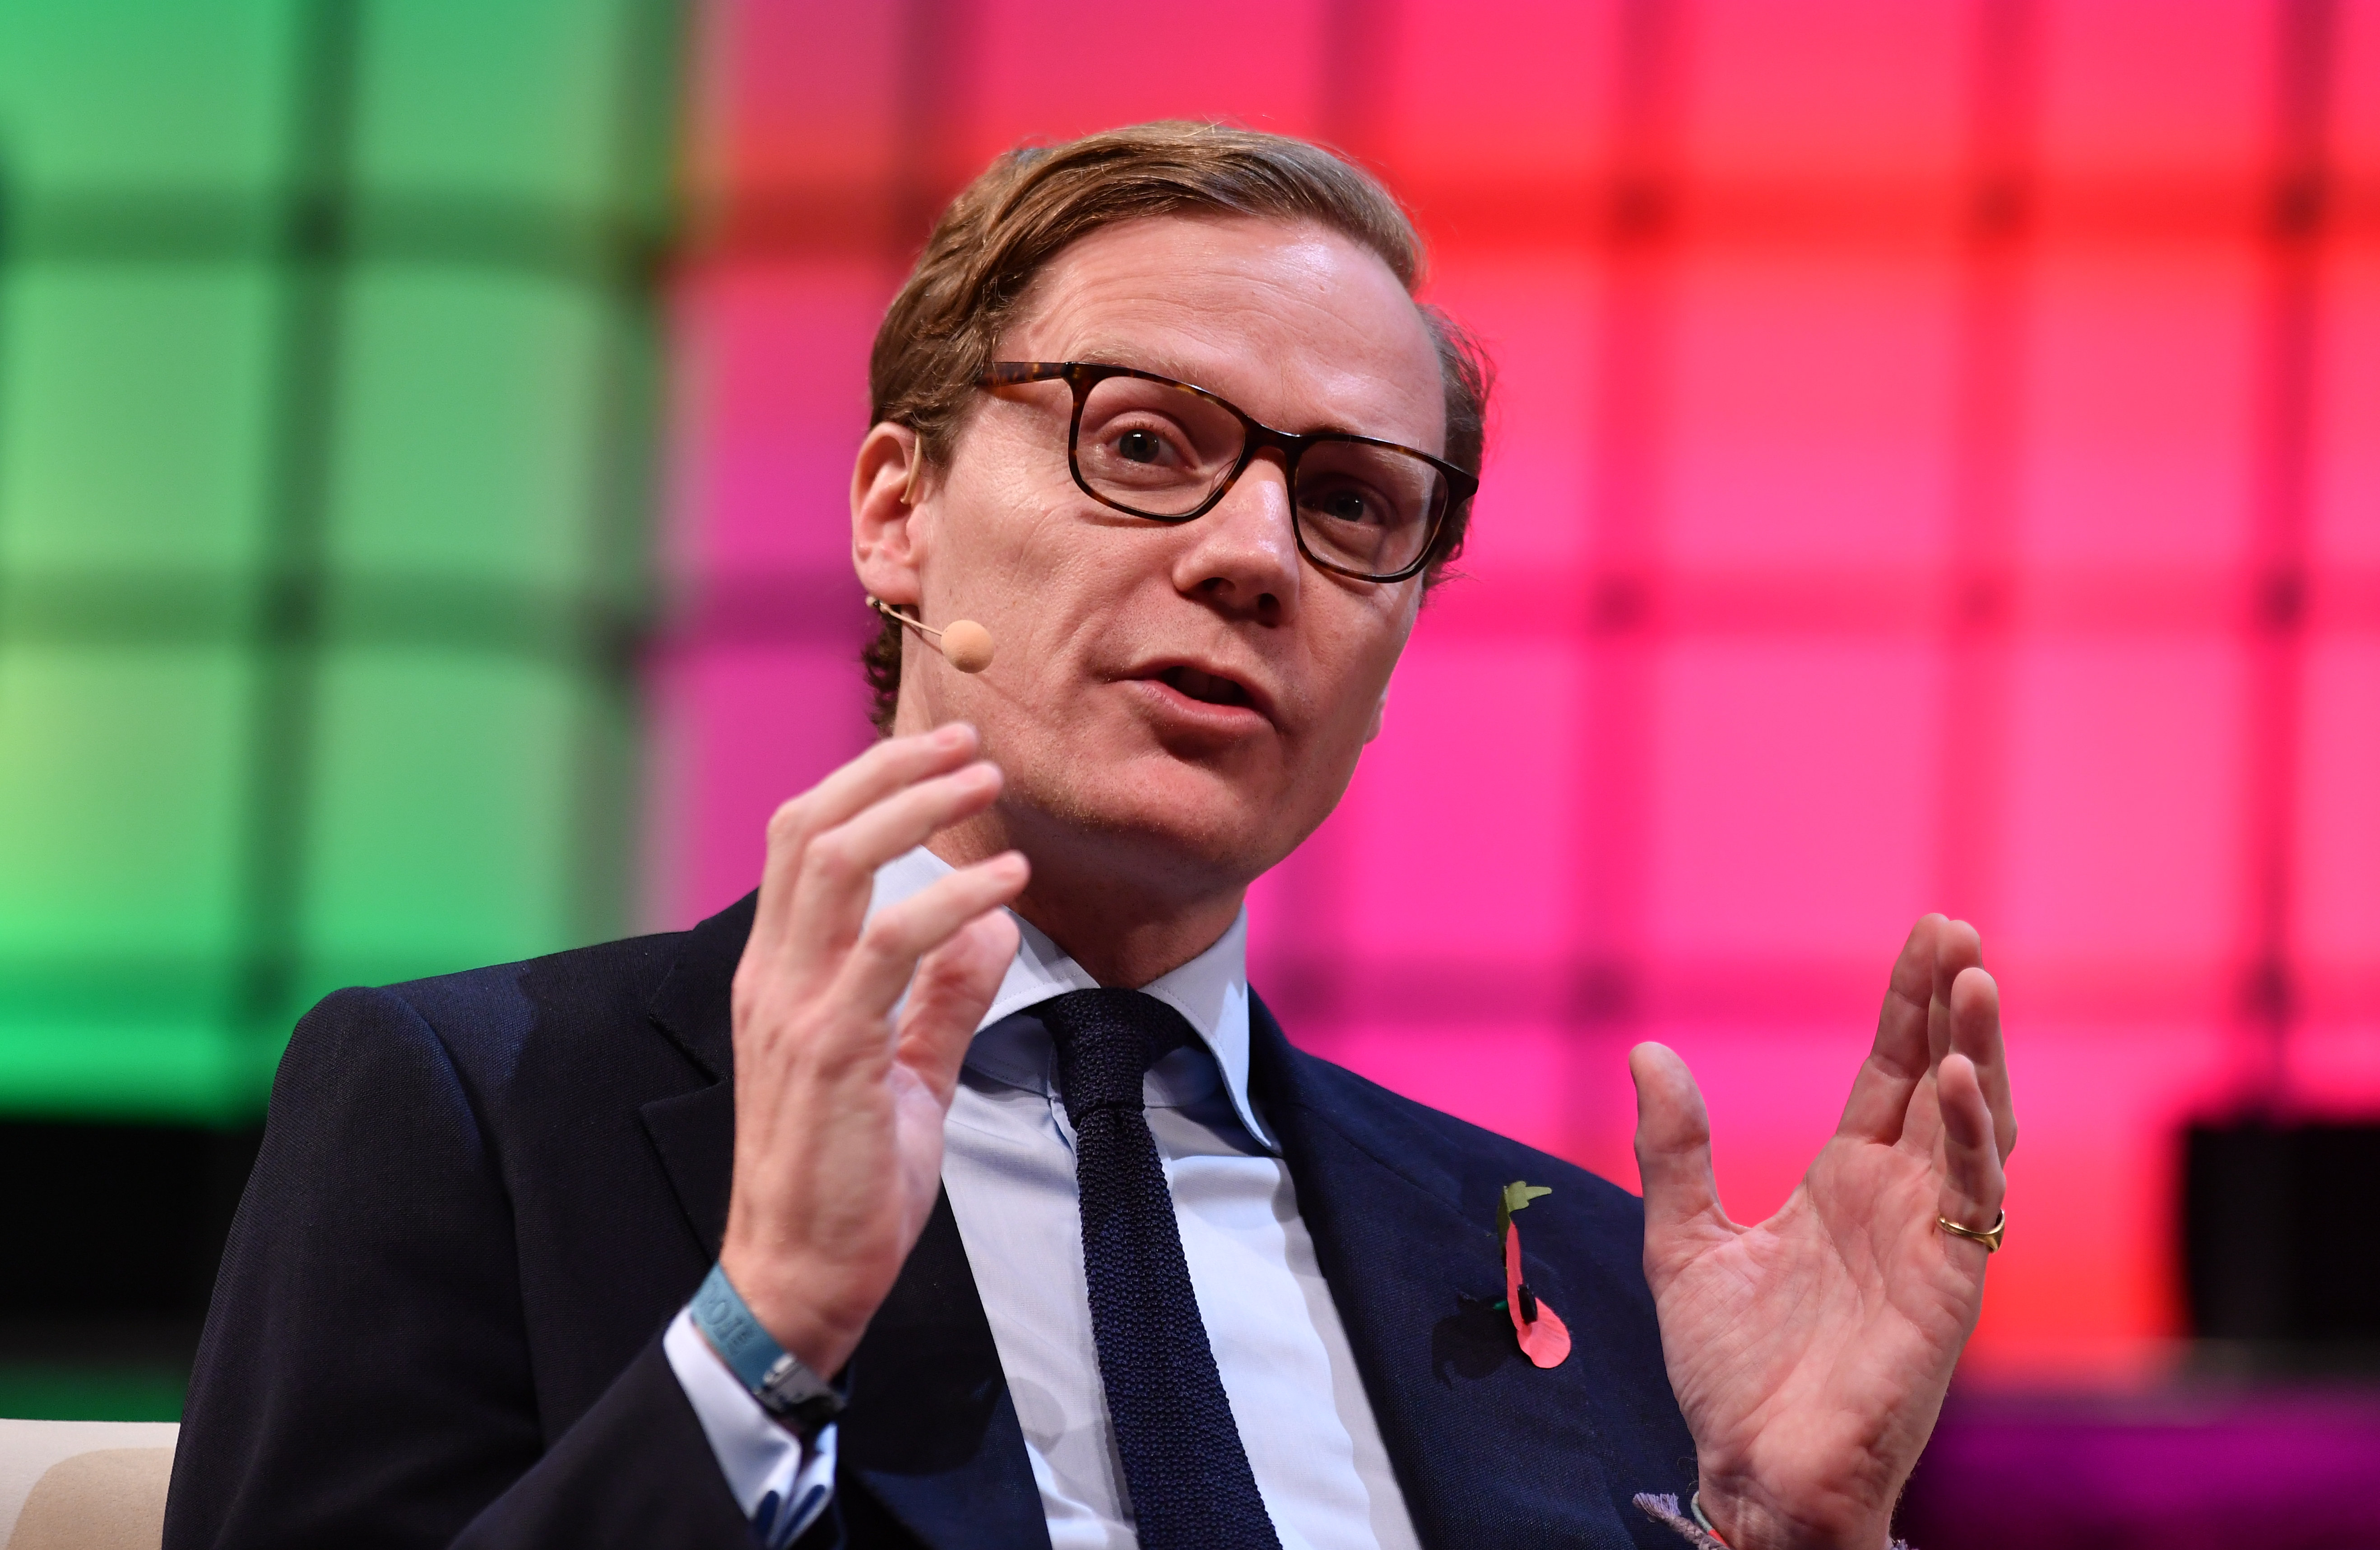 What Is Cambridge Analytica?